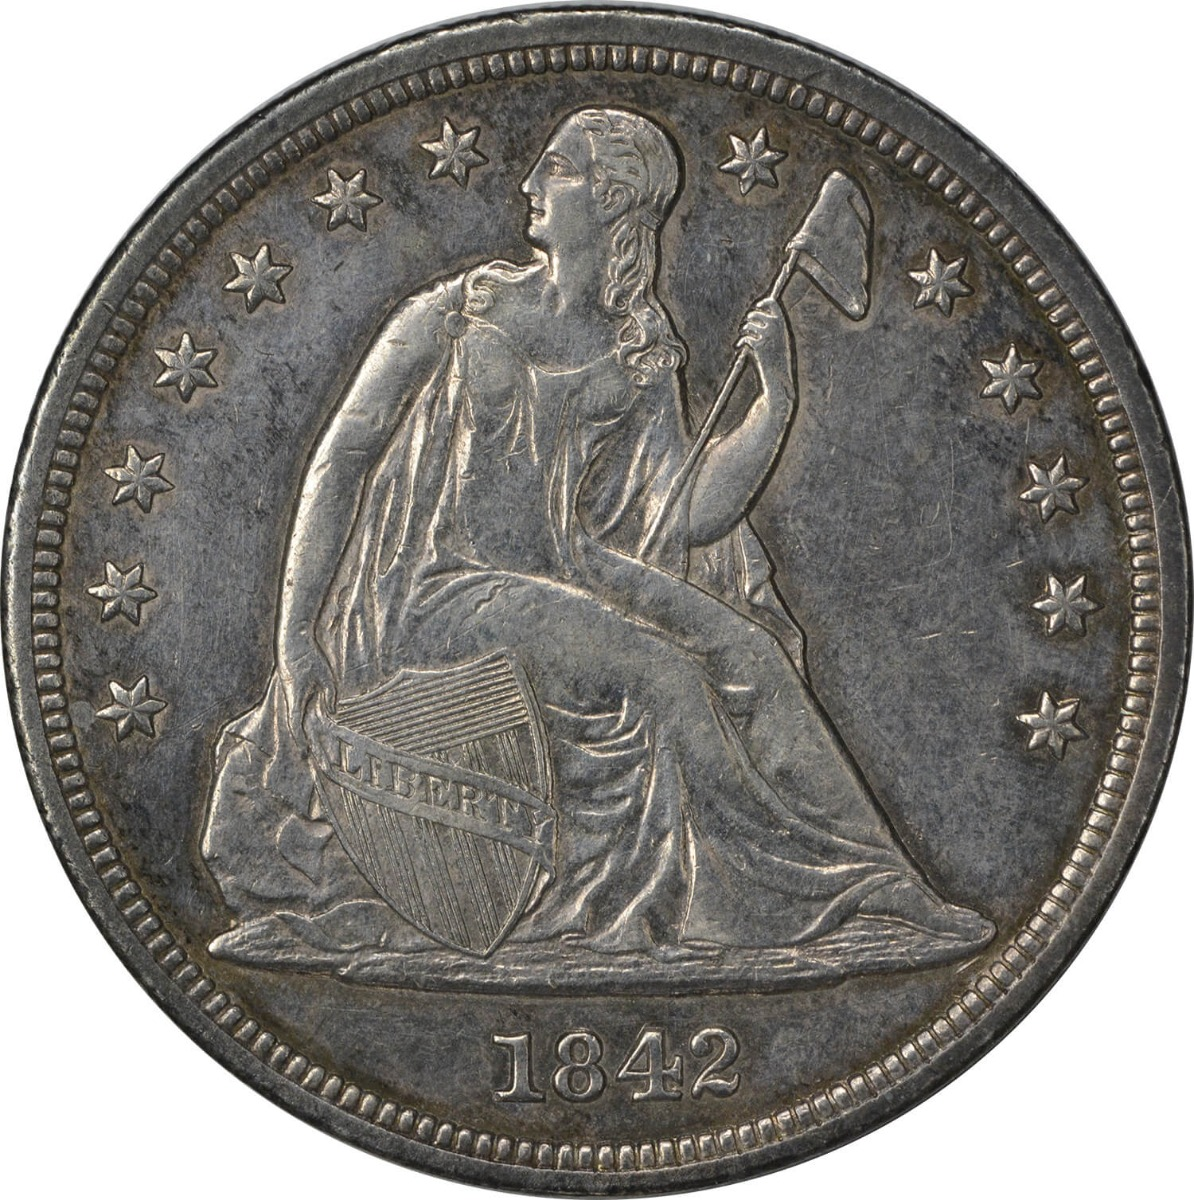 1842 Liberty Seated Silver Dollar Choice AU Uncertified